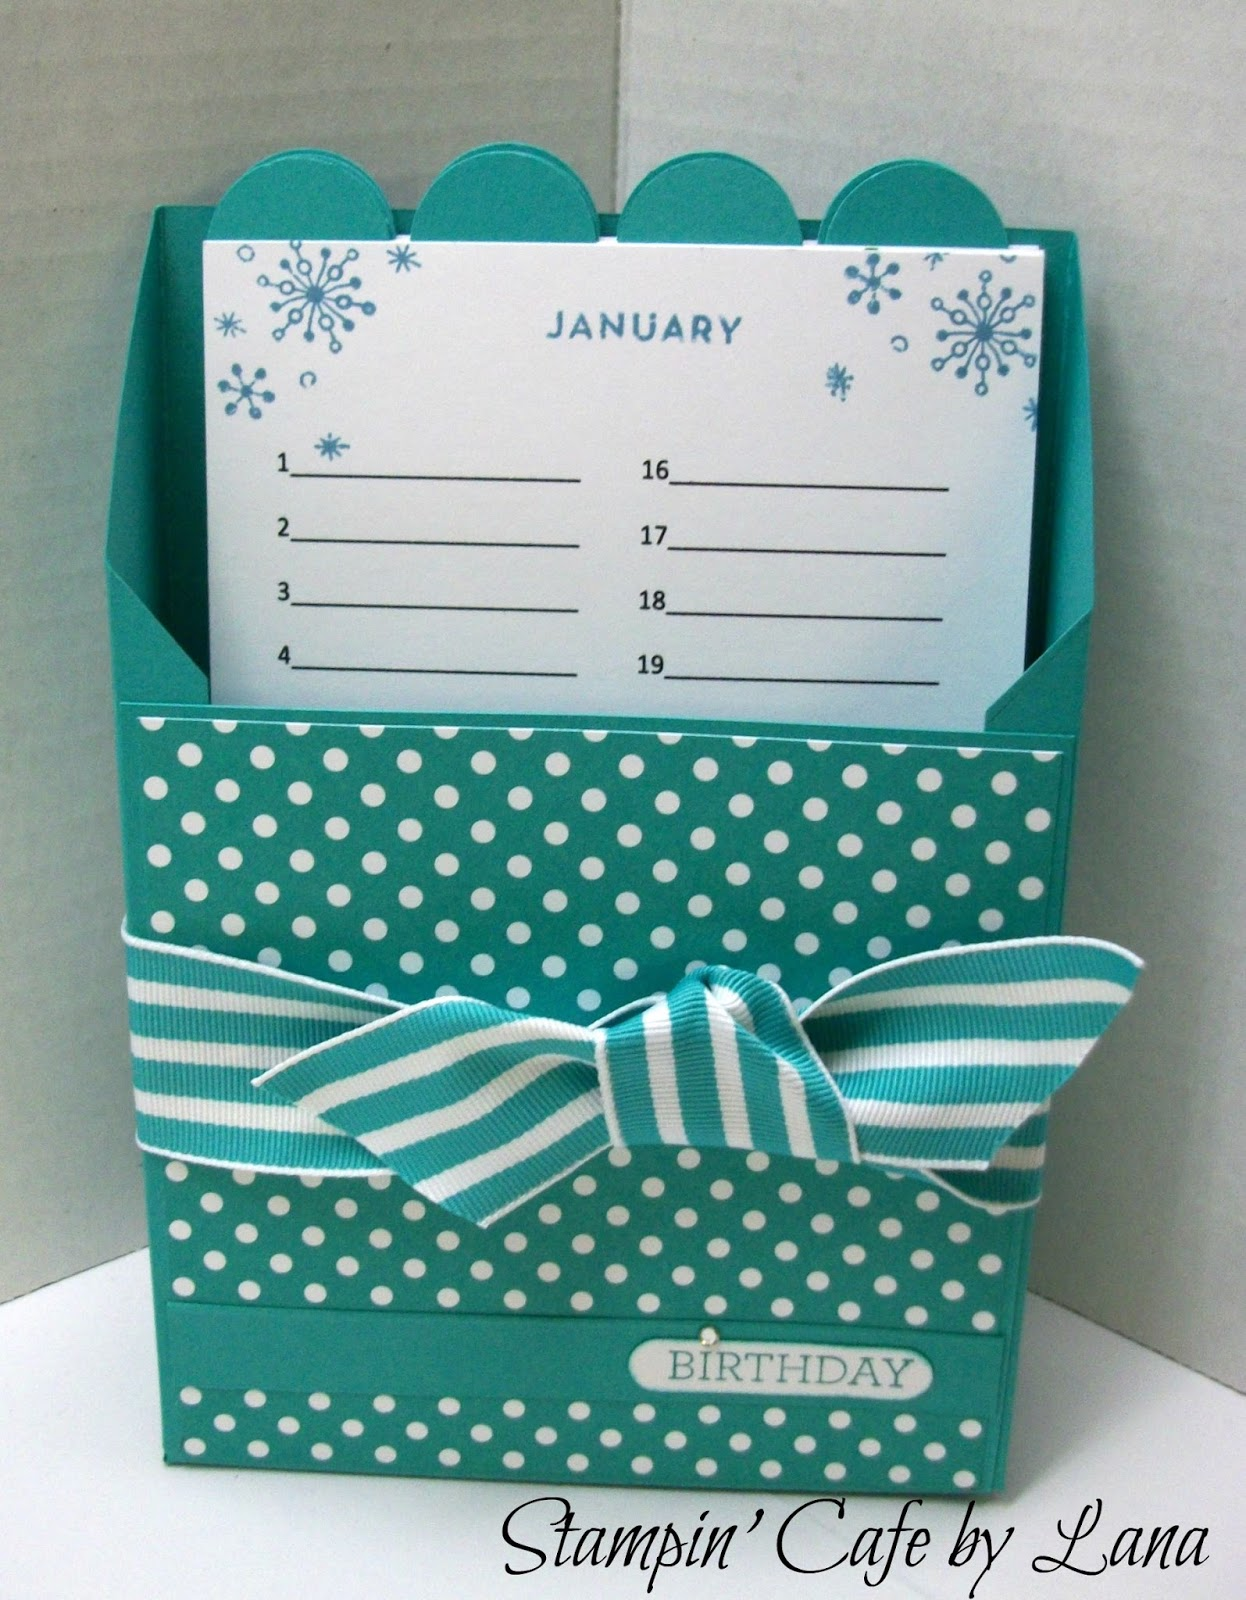 Stampin Up Calendar Ideas : Stampin cafe by lana perpetual birthday calendar and box